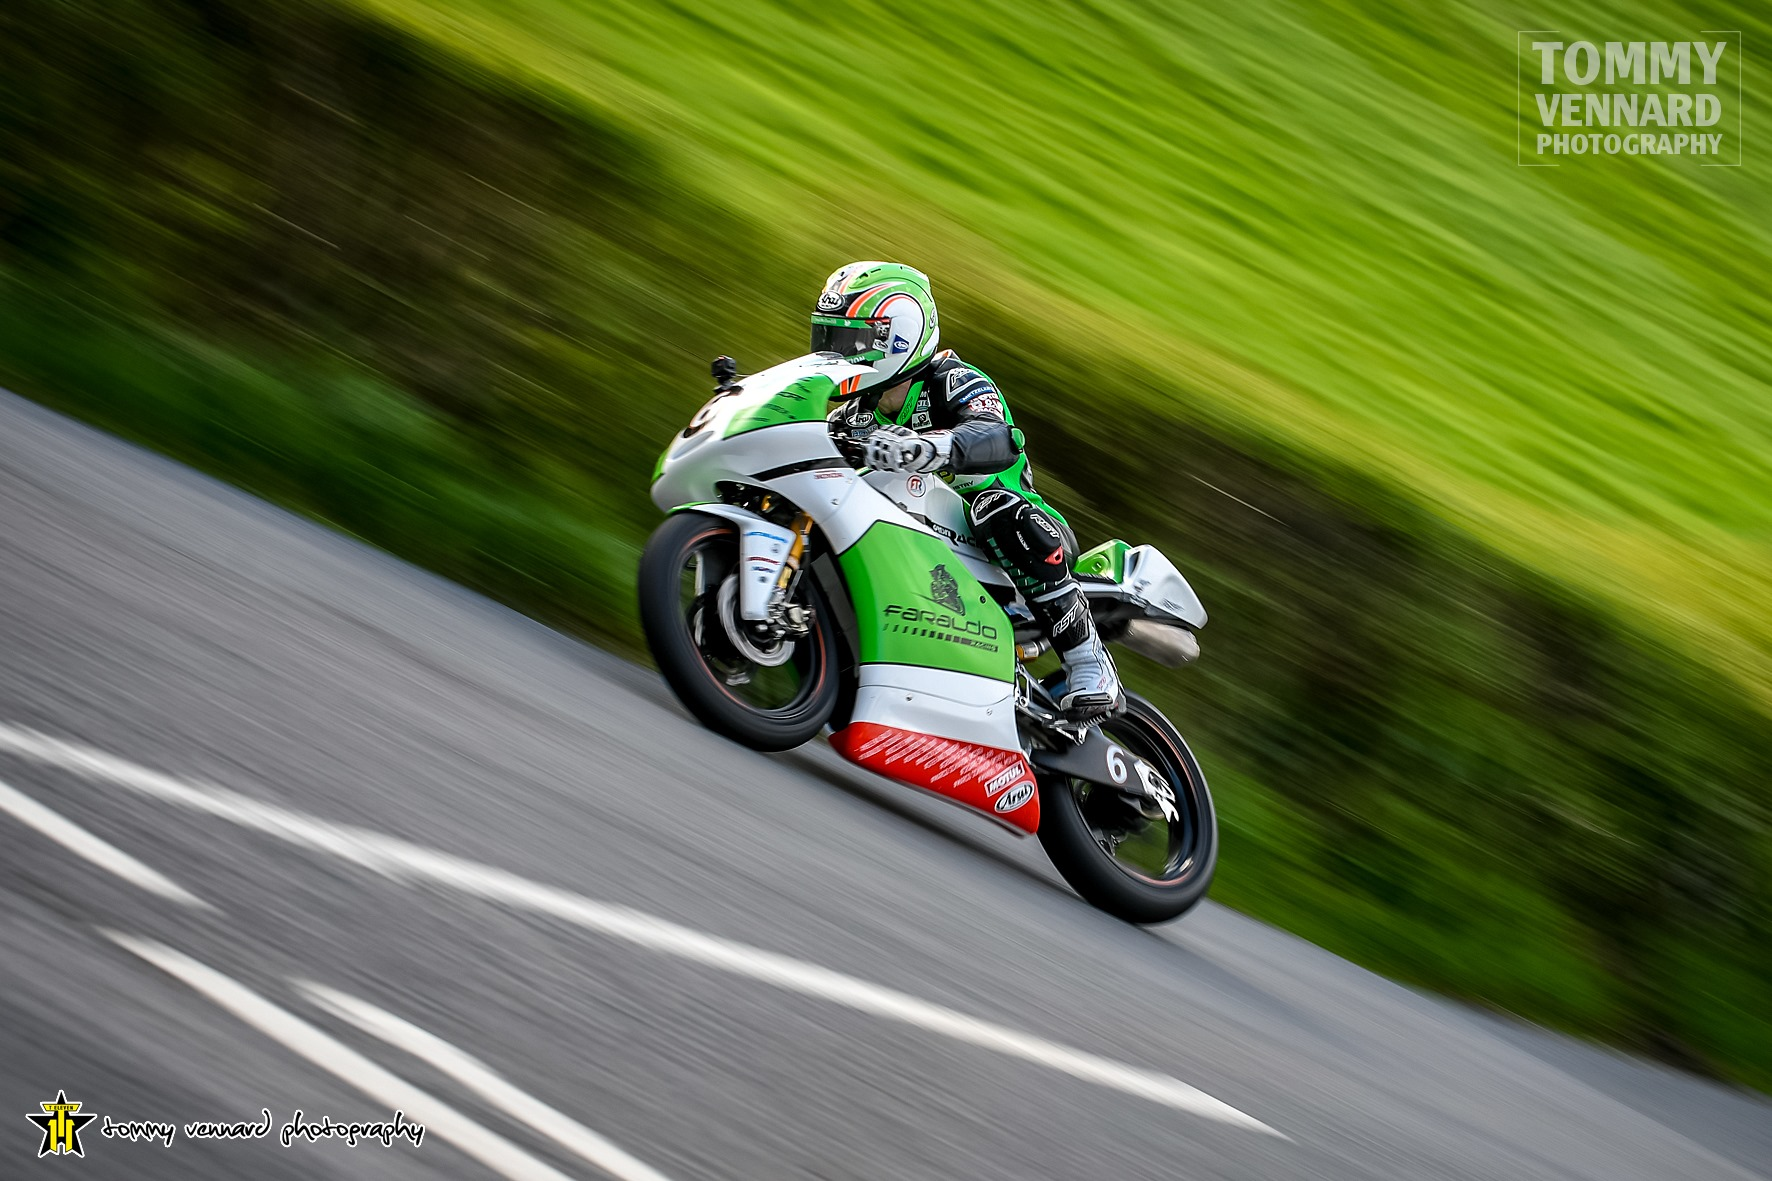 Faugheen 50: Race Day Analysis – The Results, The Competition, The Super Heroes Feats Chronicled